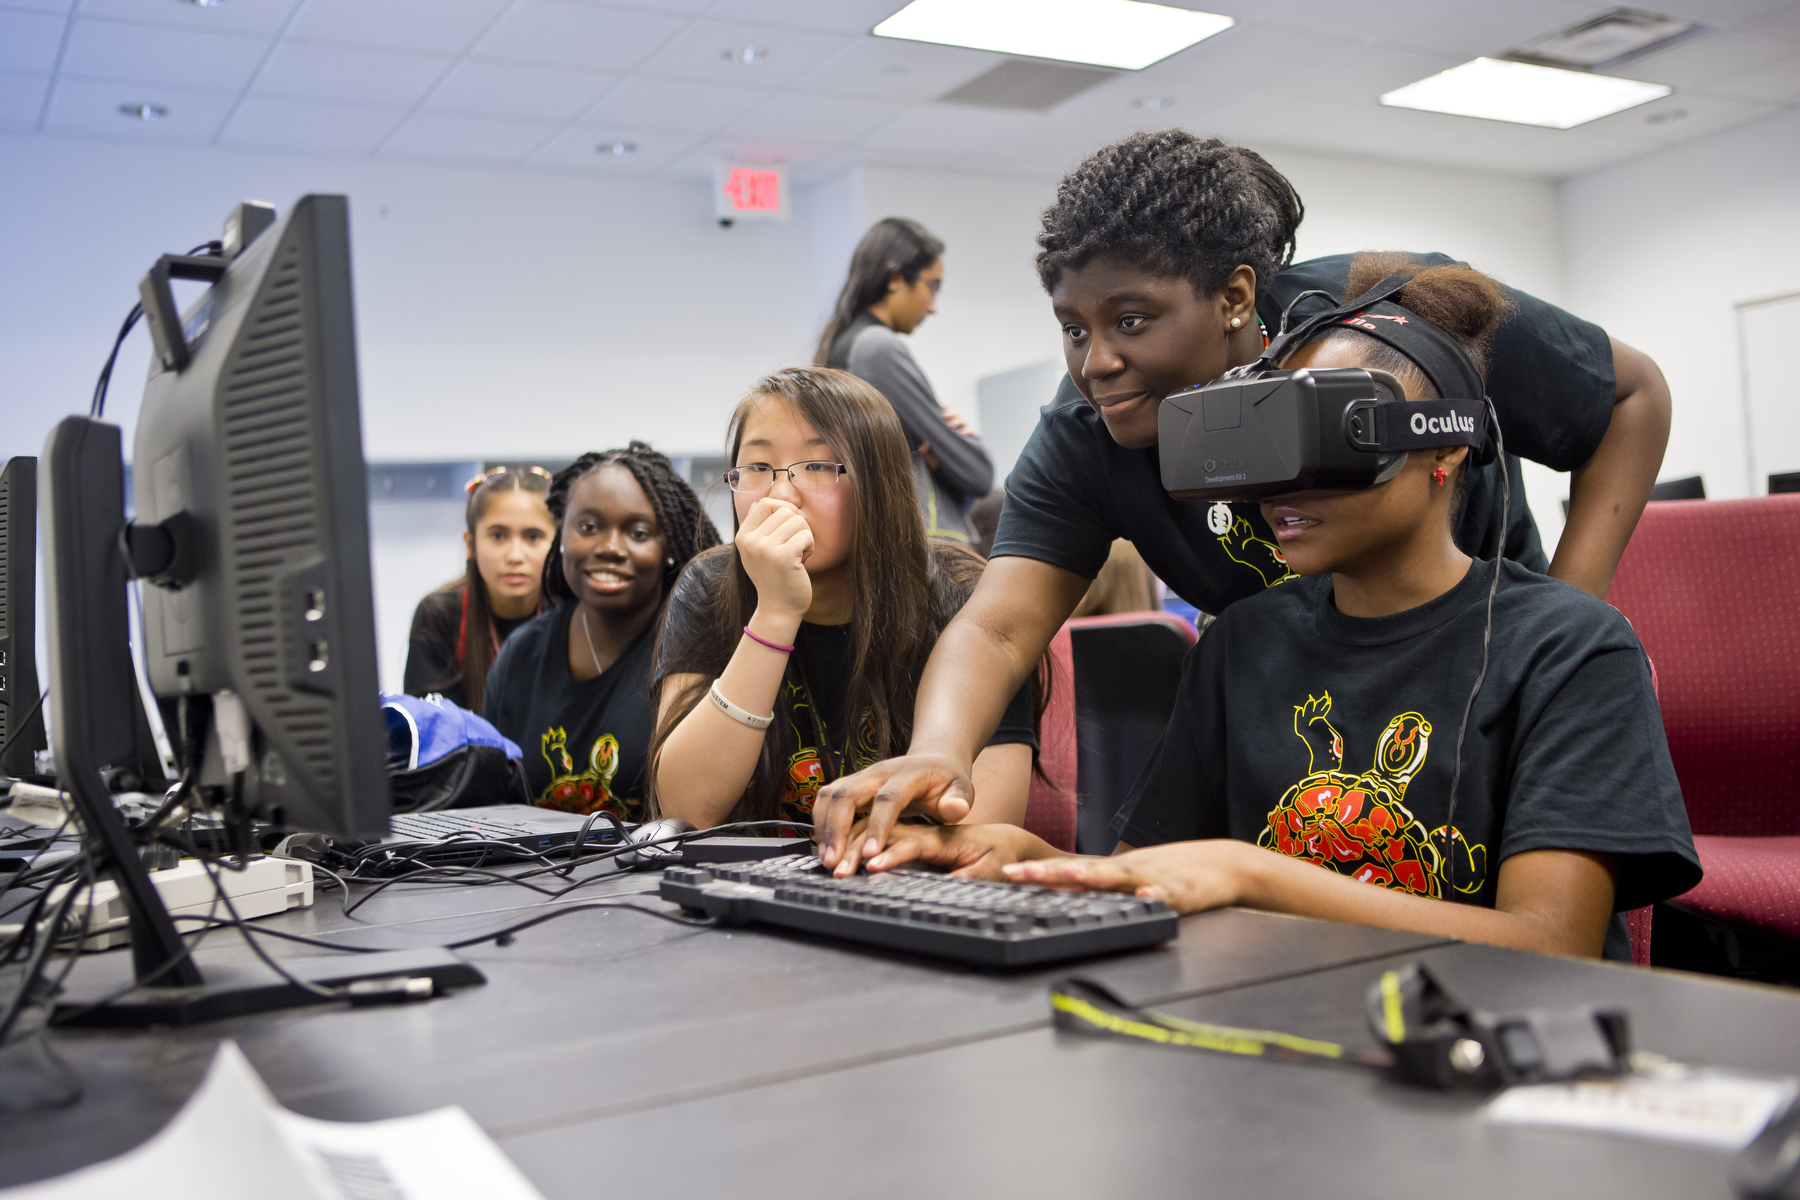 image of students with VR